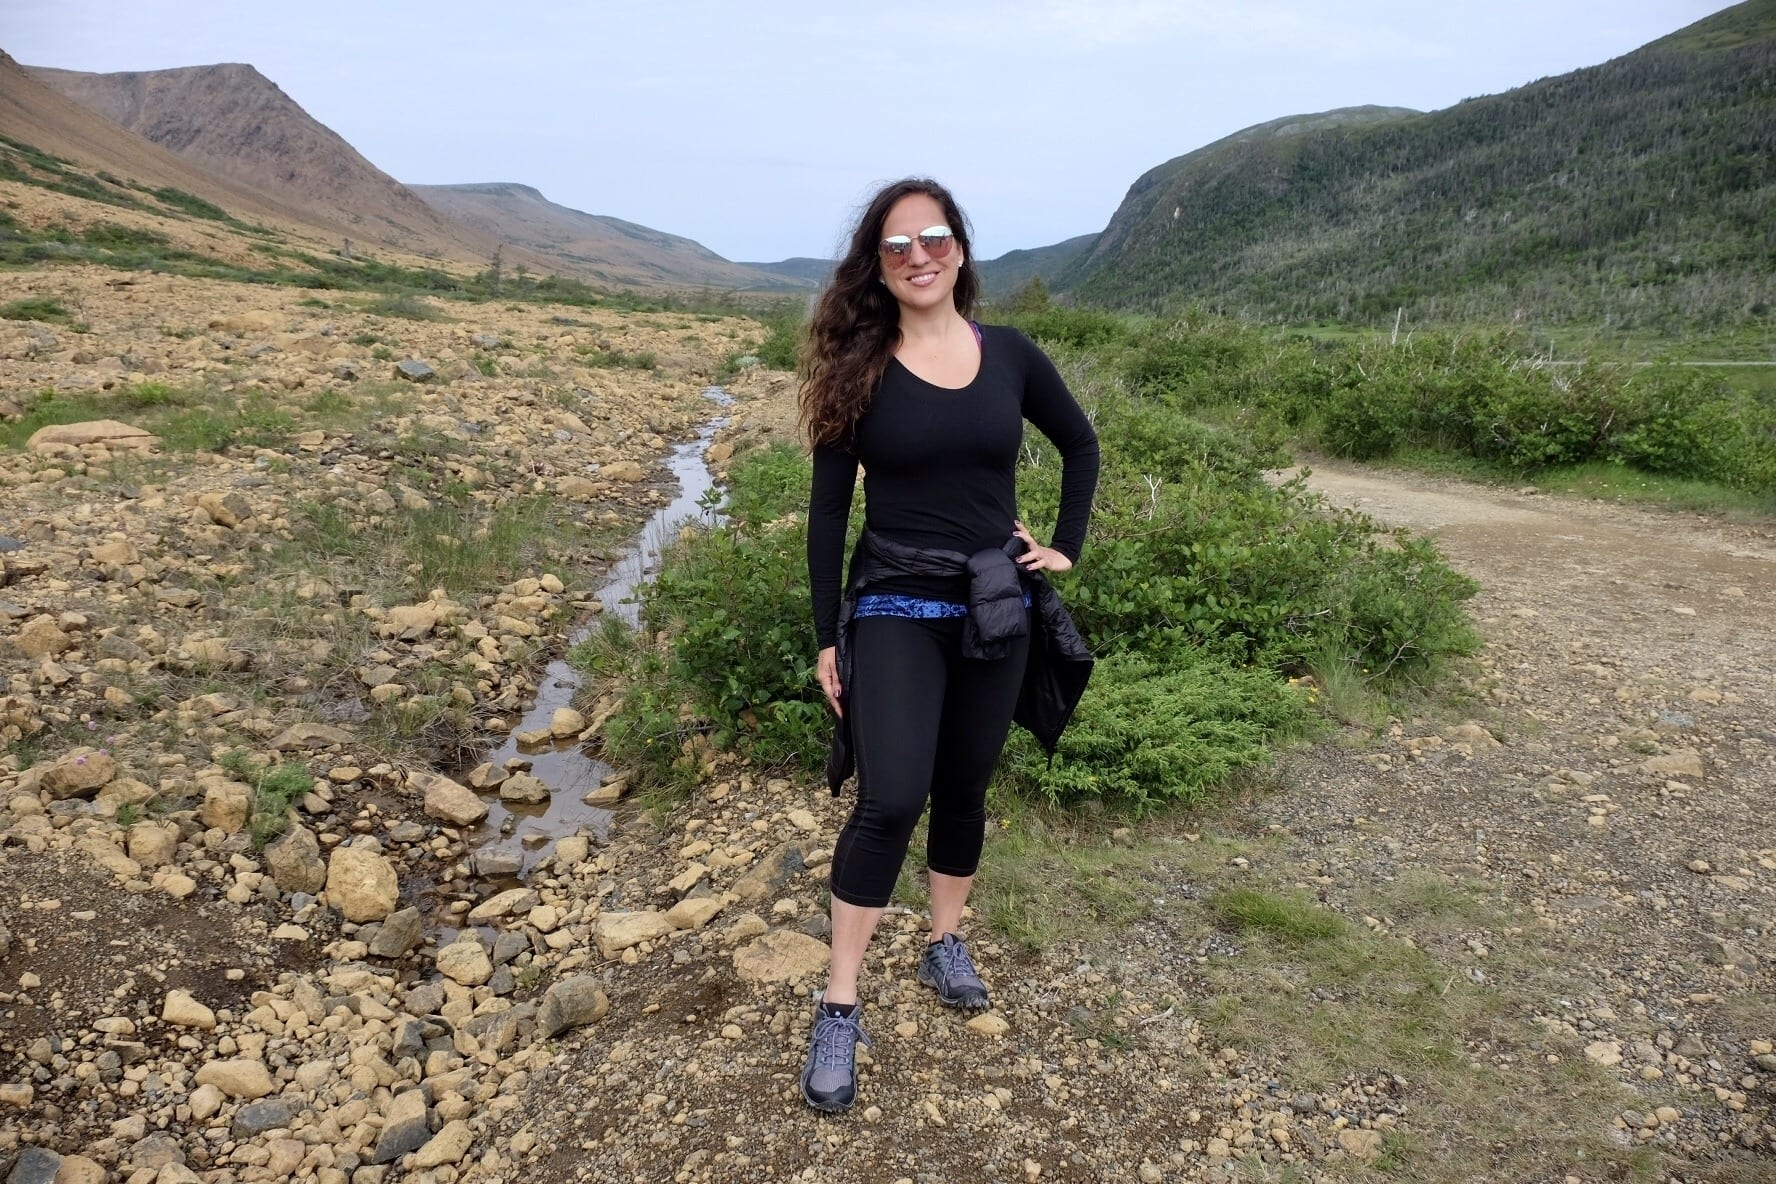 Kate stands in the Tablelands of Newfoundland surrounded by orange rocks and grassy hills.